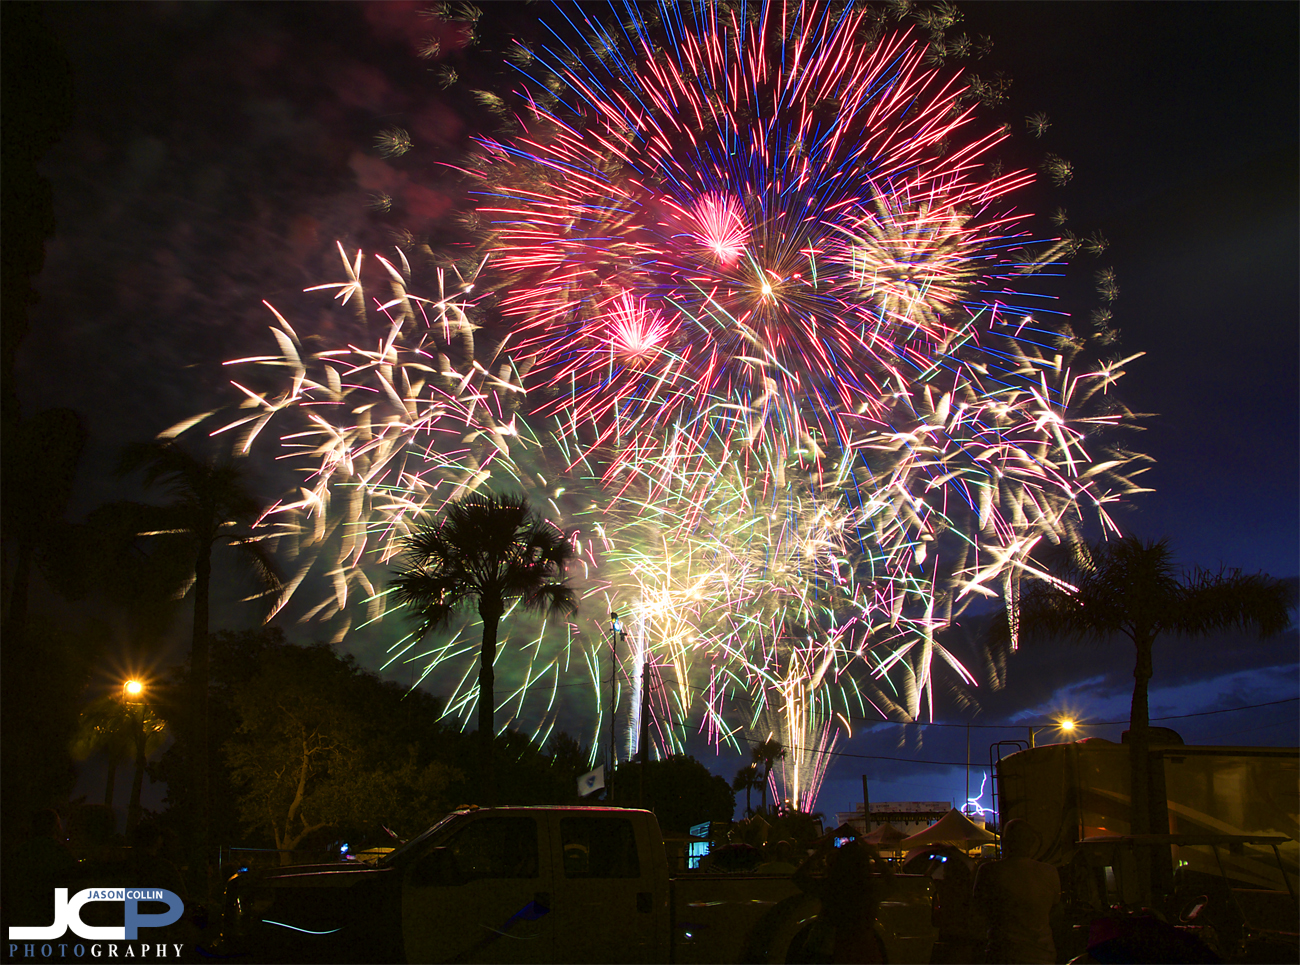 2016 Red White & Boom fireworks display in Cape Coral Florida - Nikon D300 Tamron 17-50mm @ f/11 - 10.8 sec - ISO 200 tripod mounted with cable release